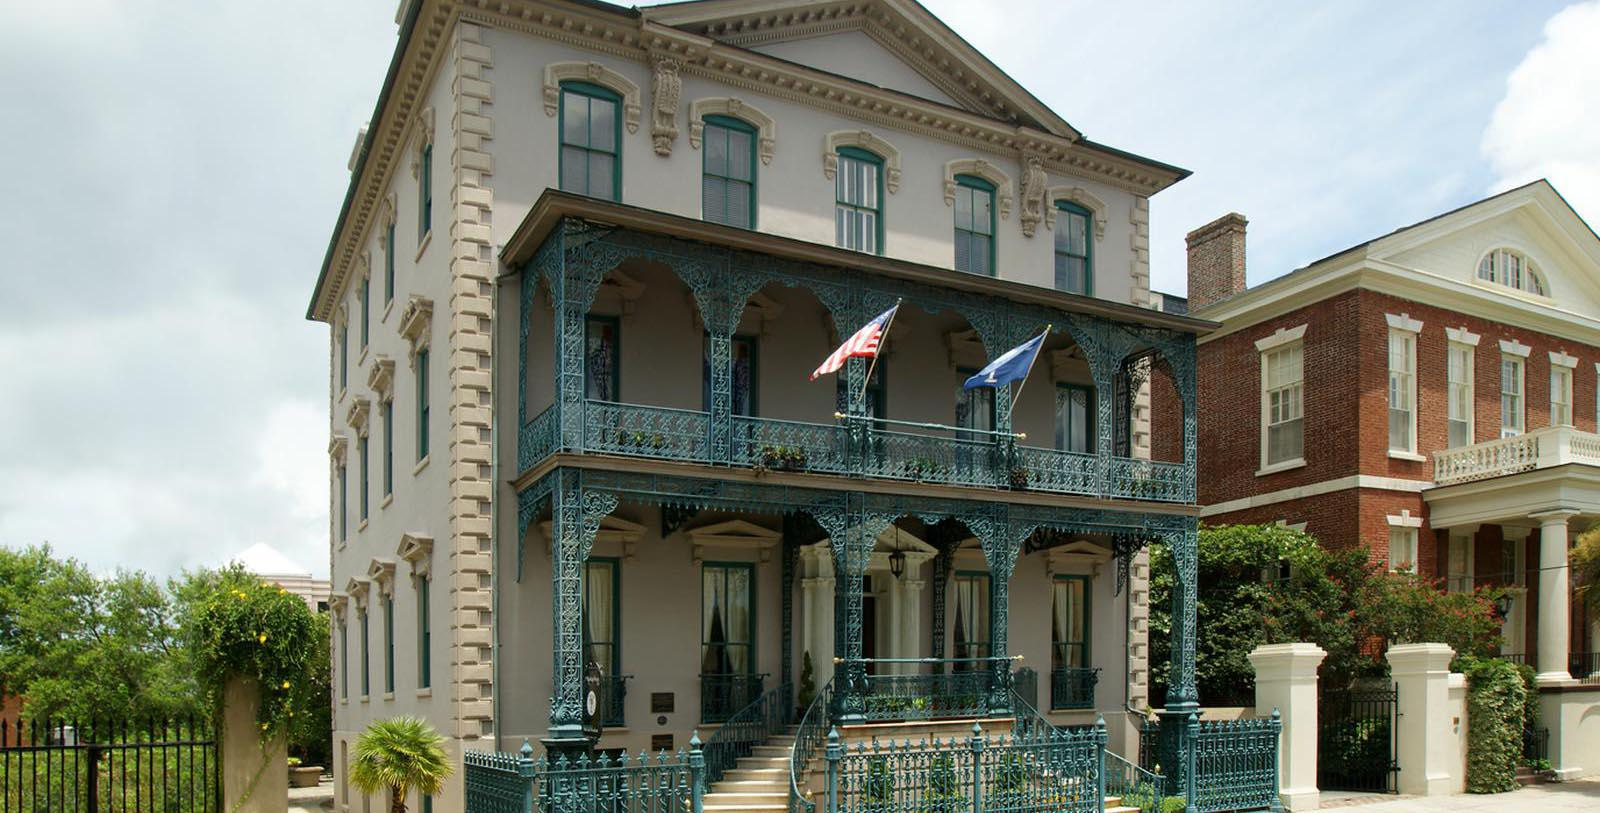 Image of Magnolia's Patio, John Rutledge House Inn in Charleston, South Carolina, 1763, Member of Historic Hotels of America, Taste